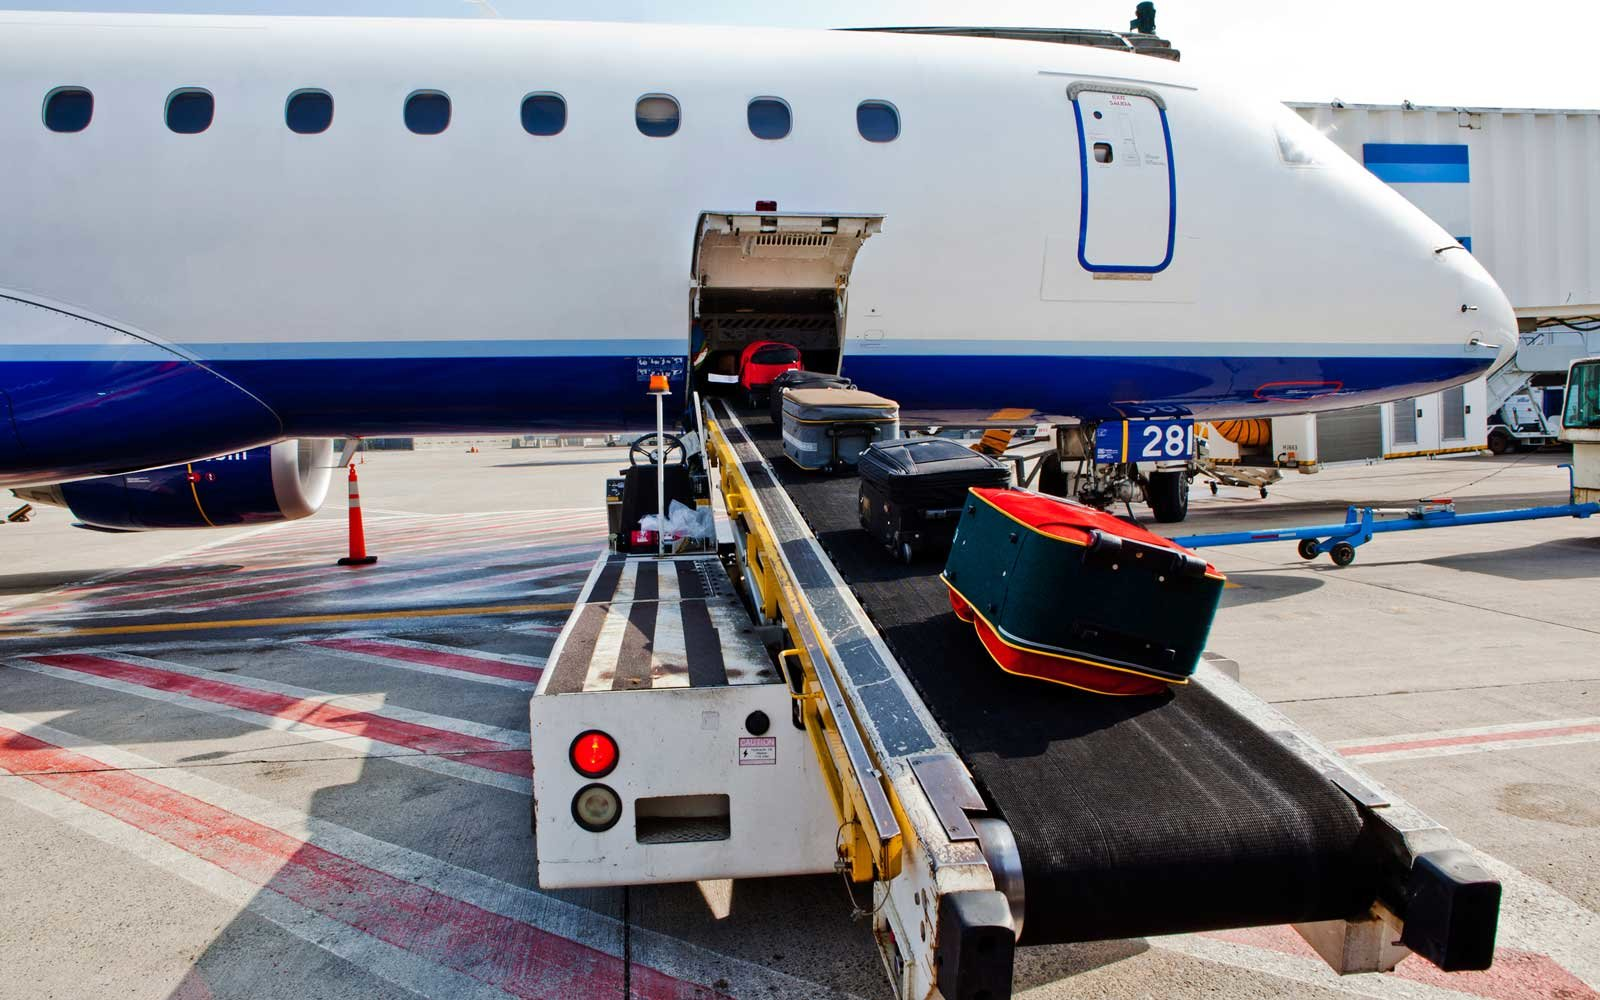 Luggage being loaded onto a commercial airplane